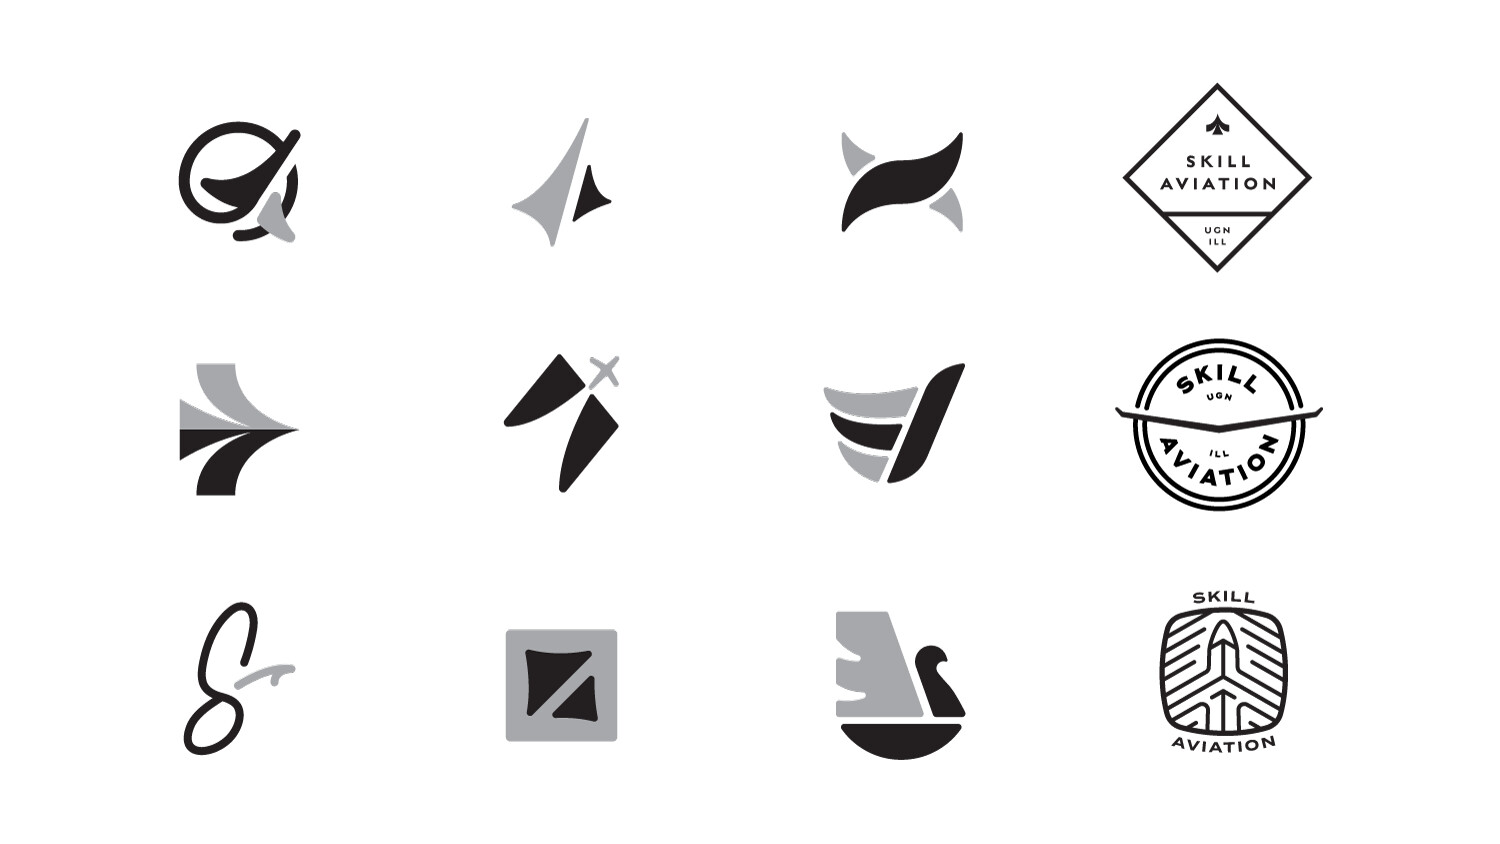 Initial logo and badge concepts